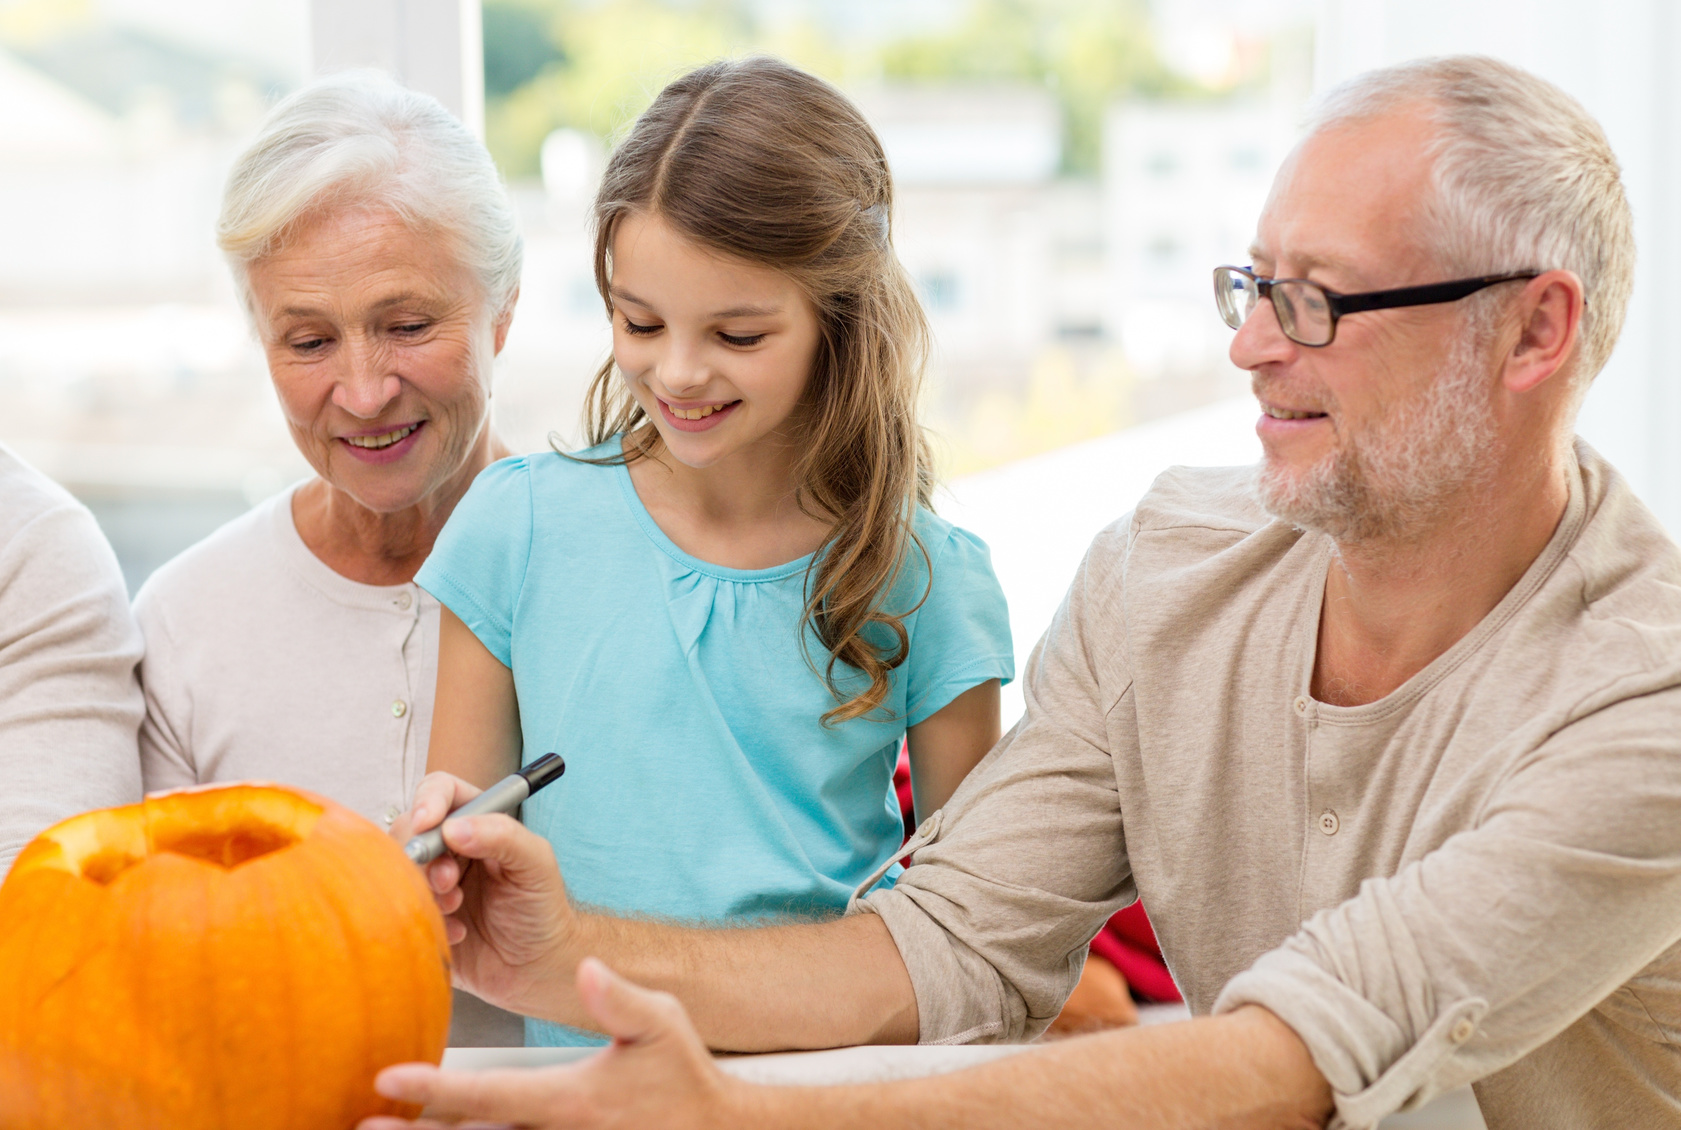 Seniors-Carving-Pumpkin-with-Little-Girl